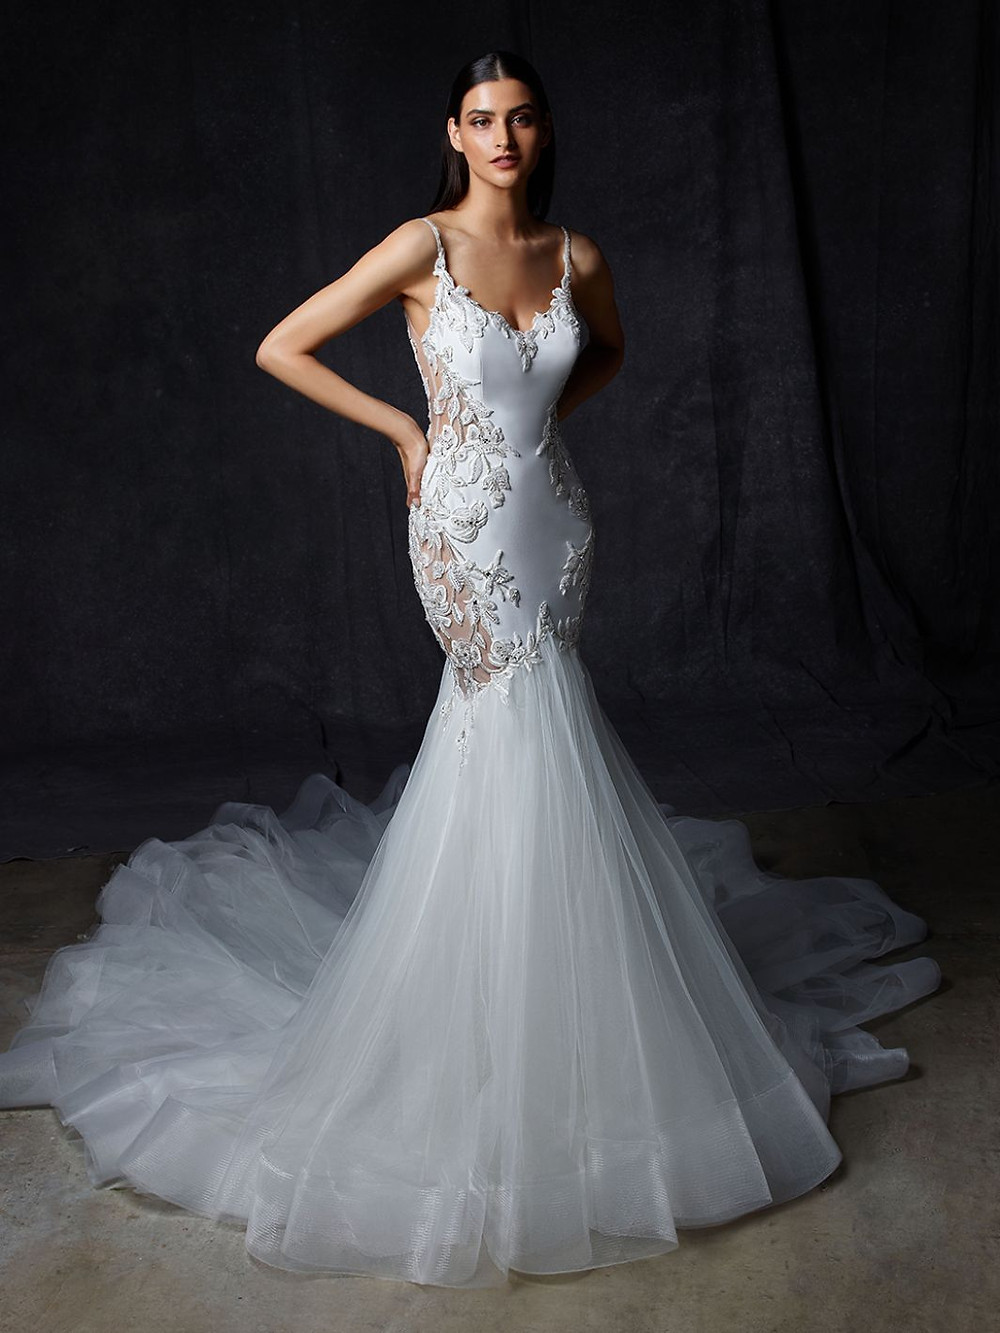 An Enzoani silk mermaid wedding dress with a tulle skirt, thin straps and lace